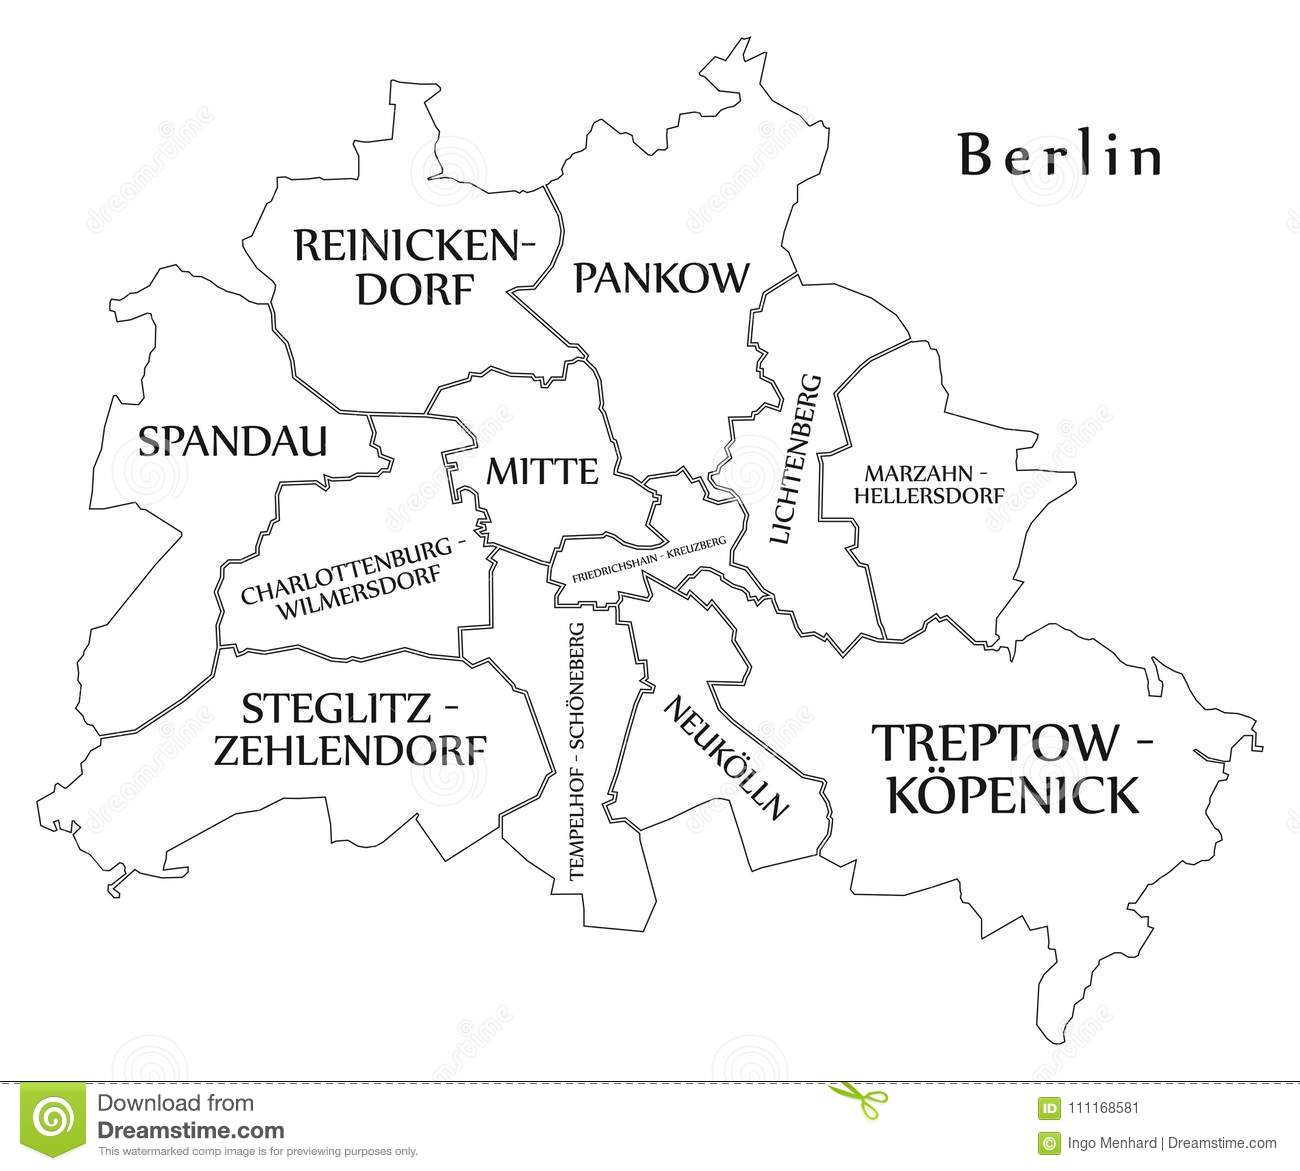 Modern city map berlin city of germany with boroughs and title modern city map berlin city of germany with boroughs and title gumiabroncs Choice Image